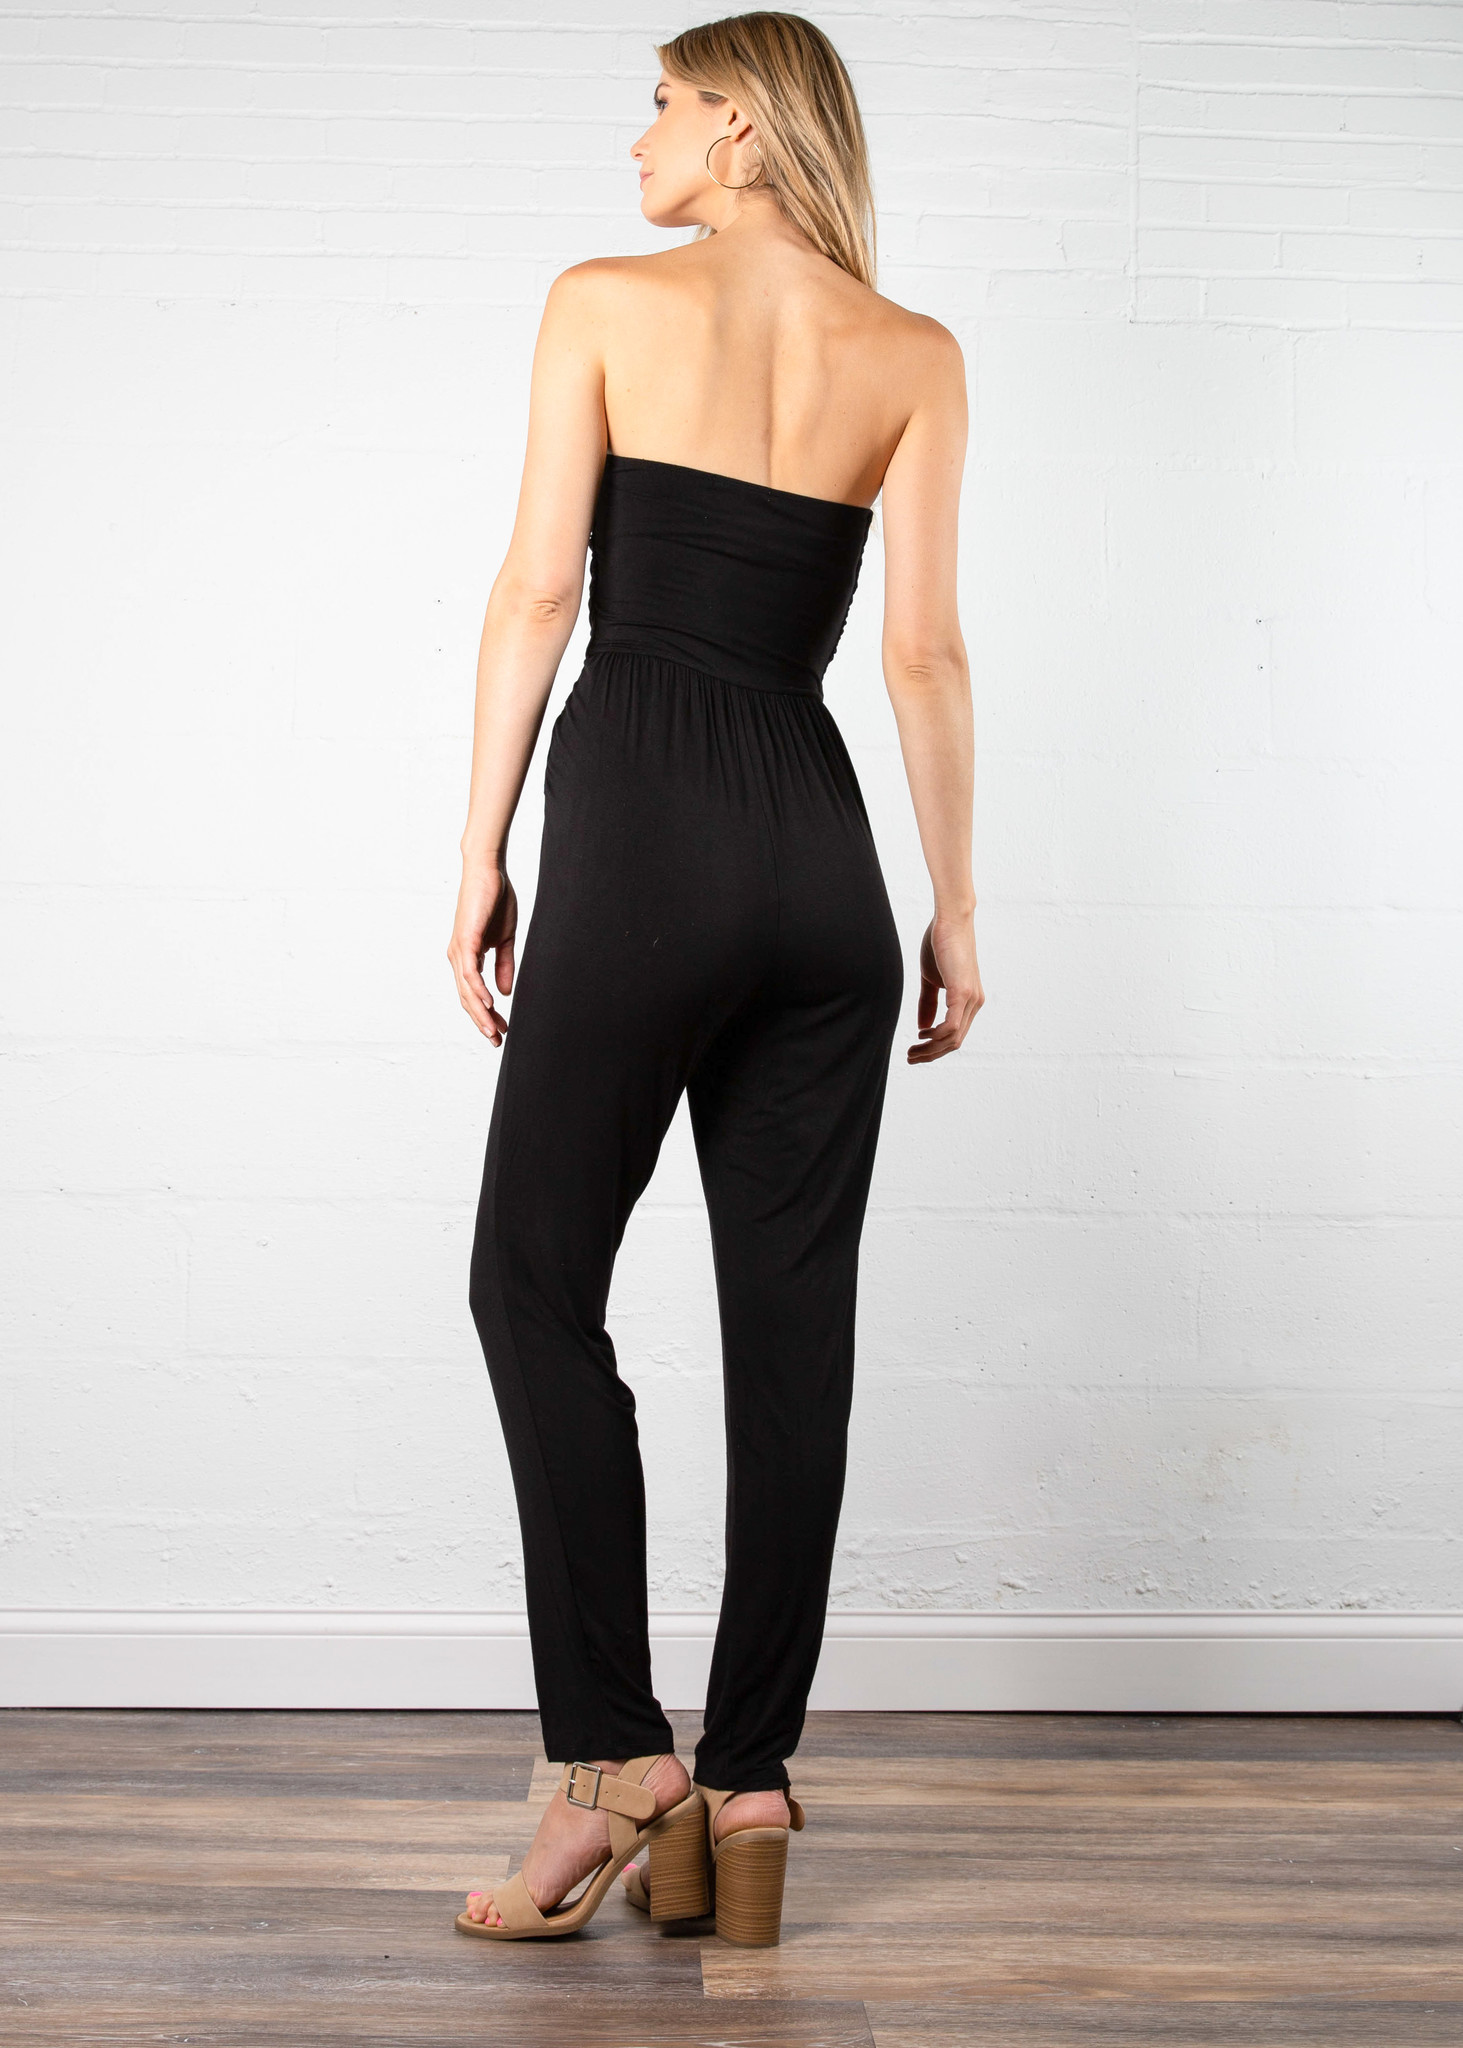 CHANNING STRAPLESS JUMPSUIT